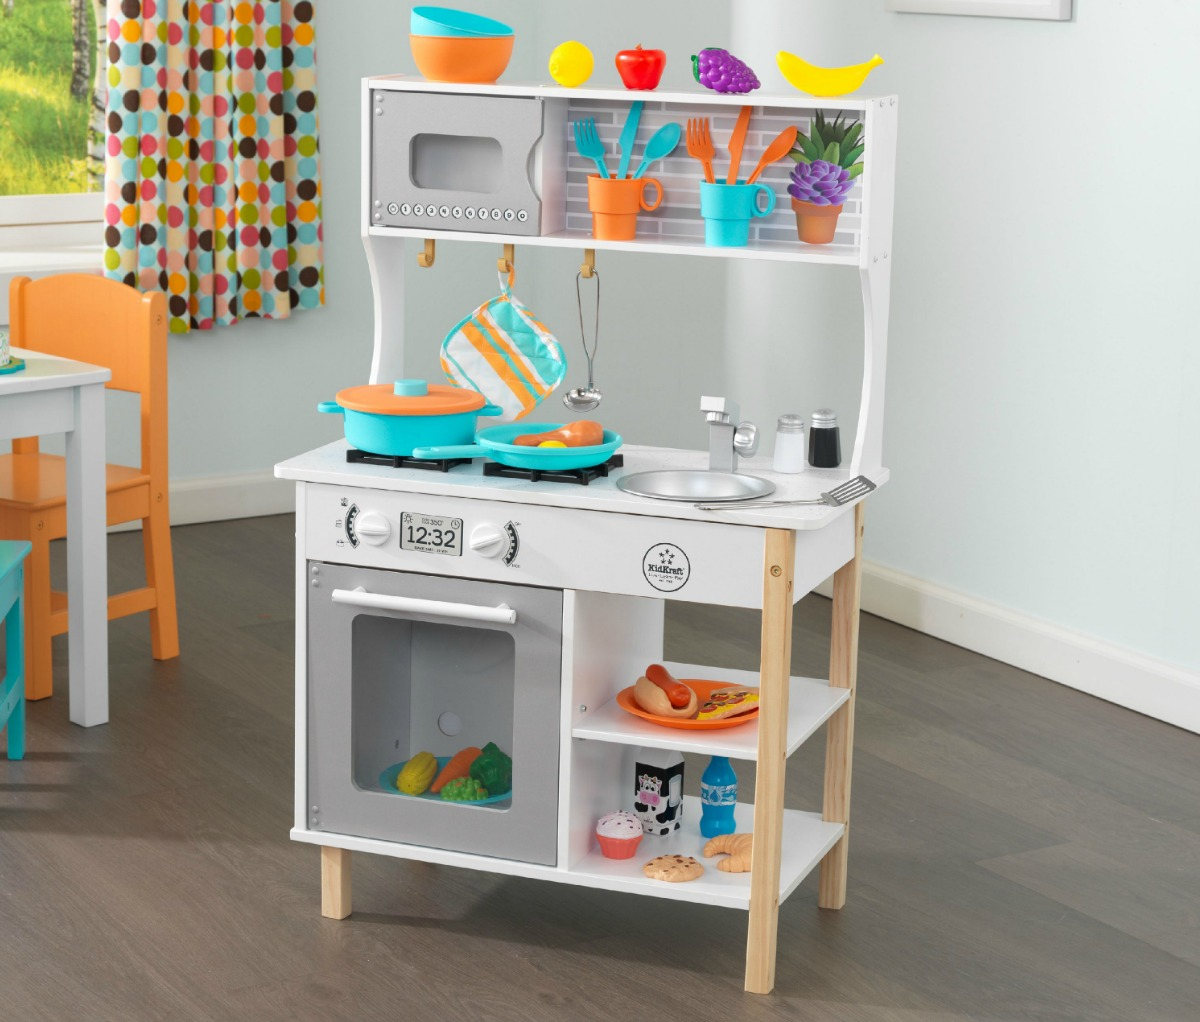 Large wooden play kitchen